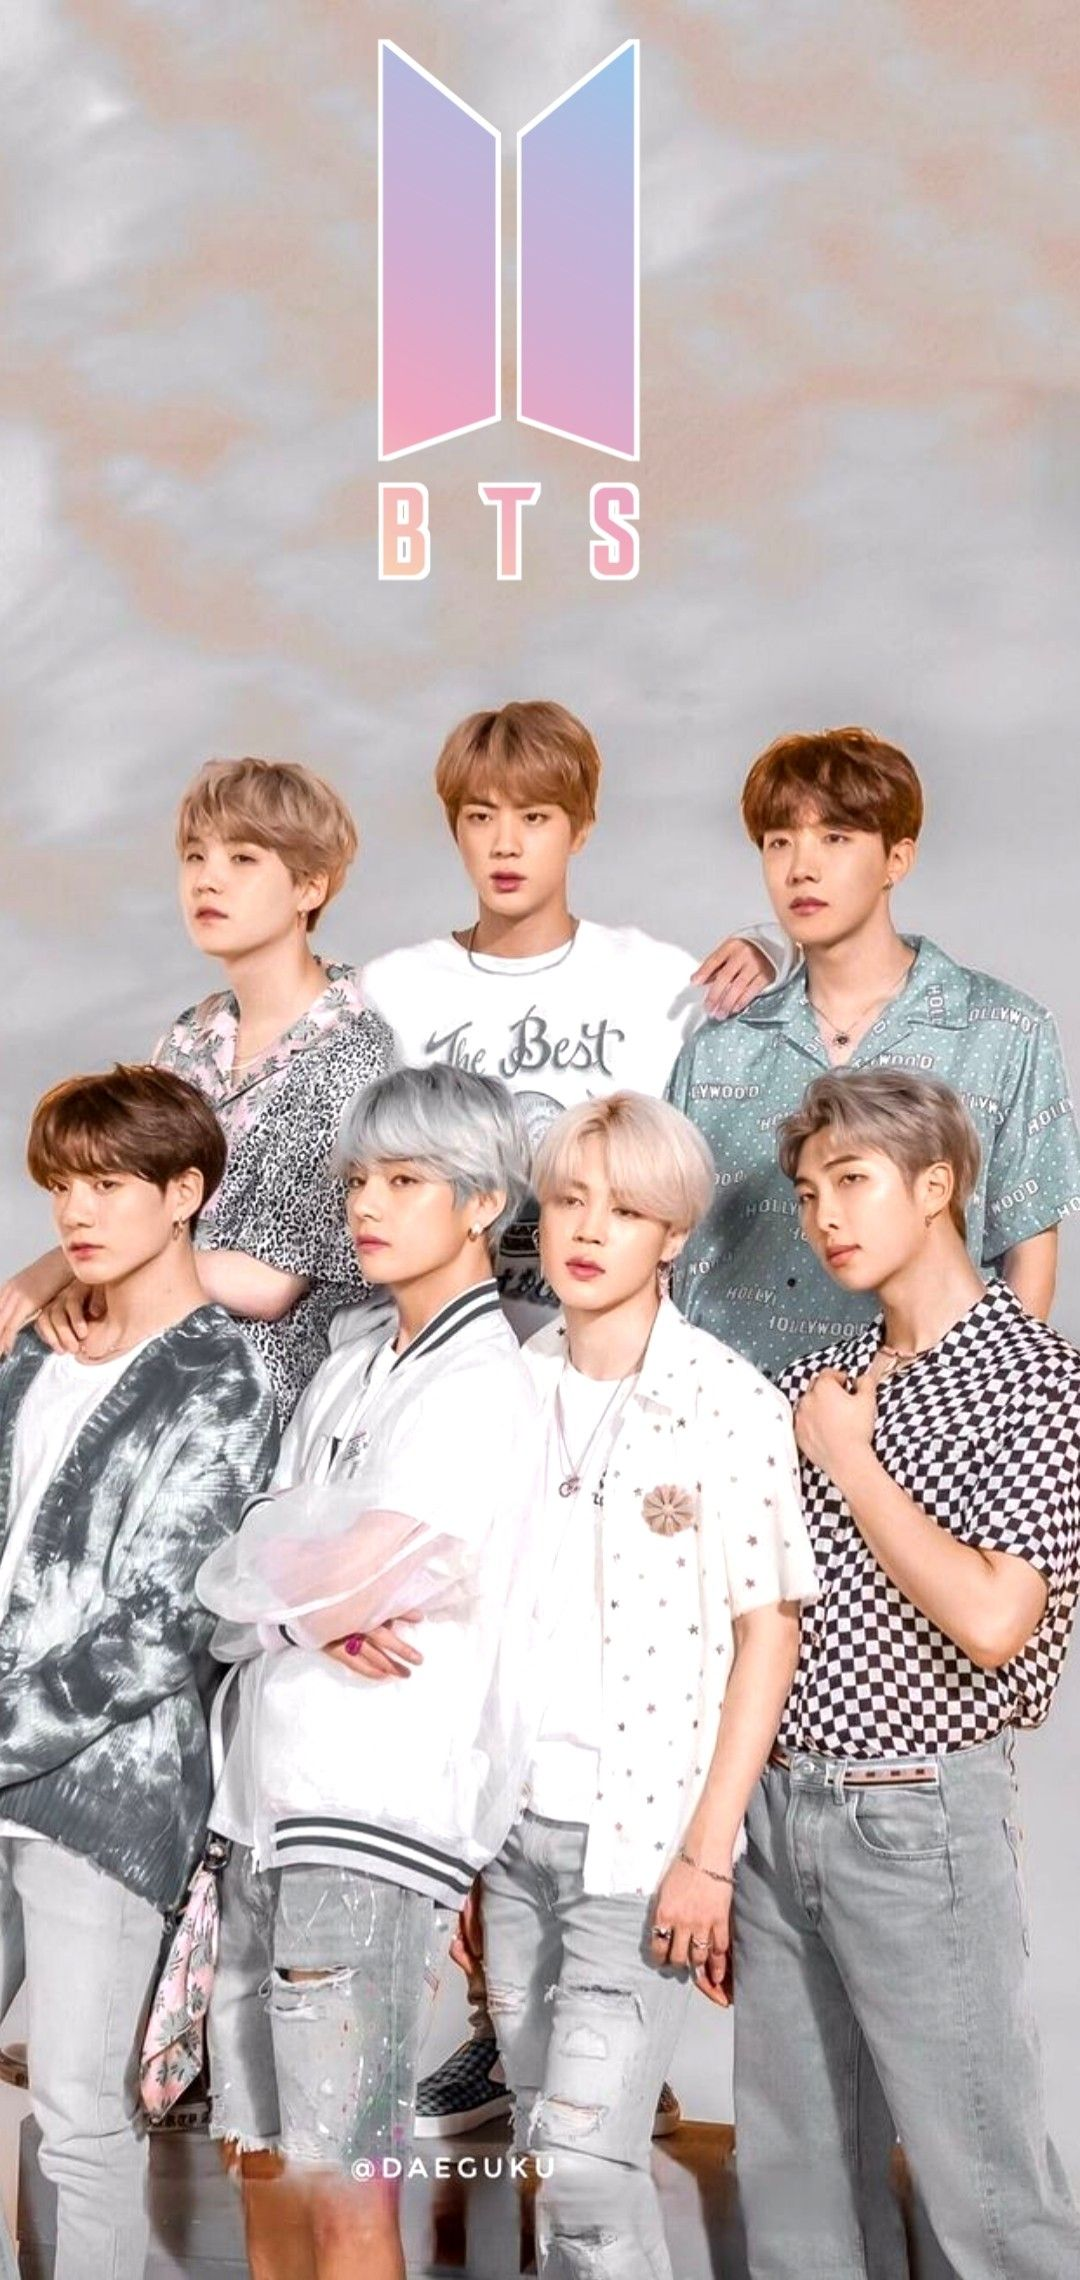 Pin By Ratu On V Bts Backgrounds Bts Group Photo Wallpaper Bts Wallpaper Bts group photo hd wallpaper